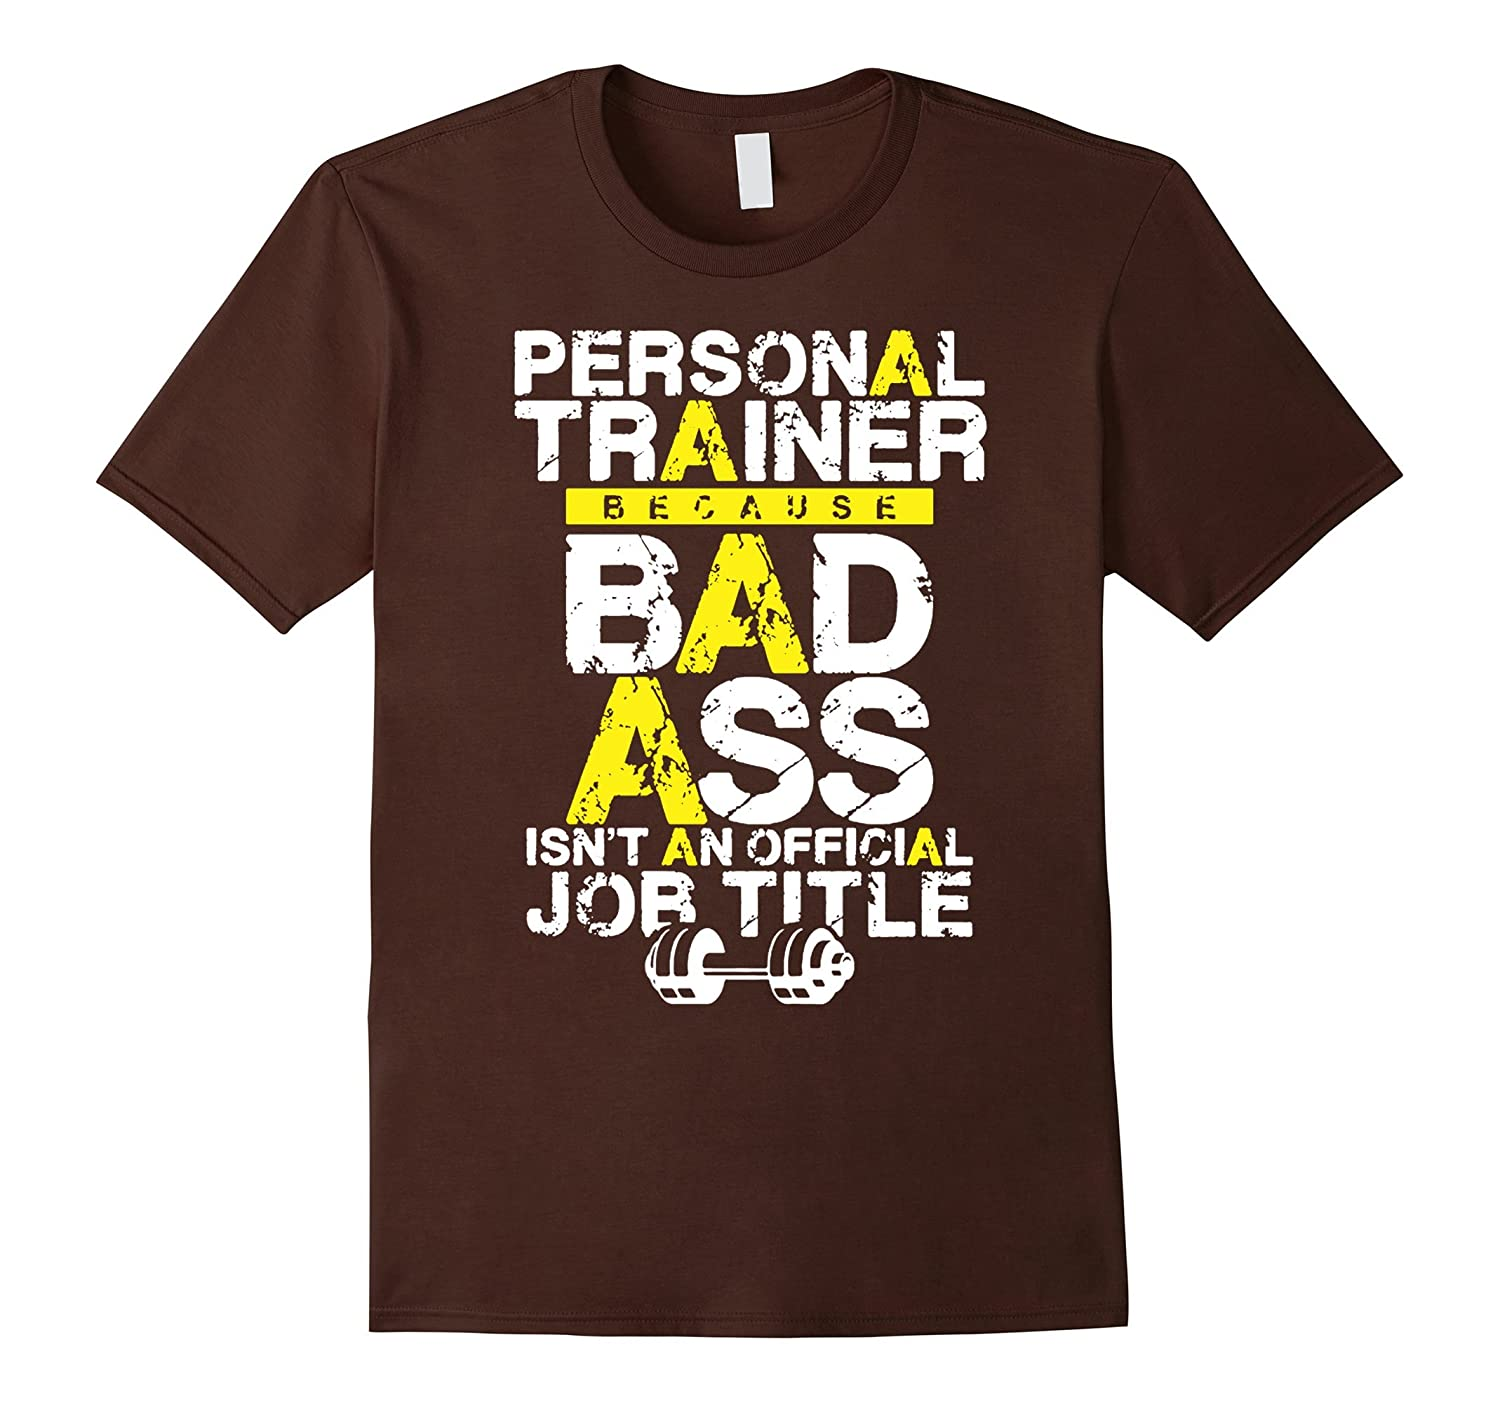 Personal Trainer T shirt - Personal Trainer Shirt-TJ